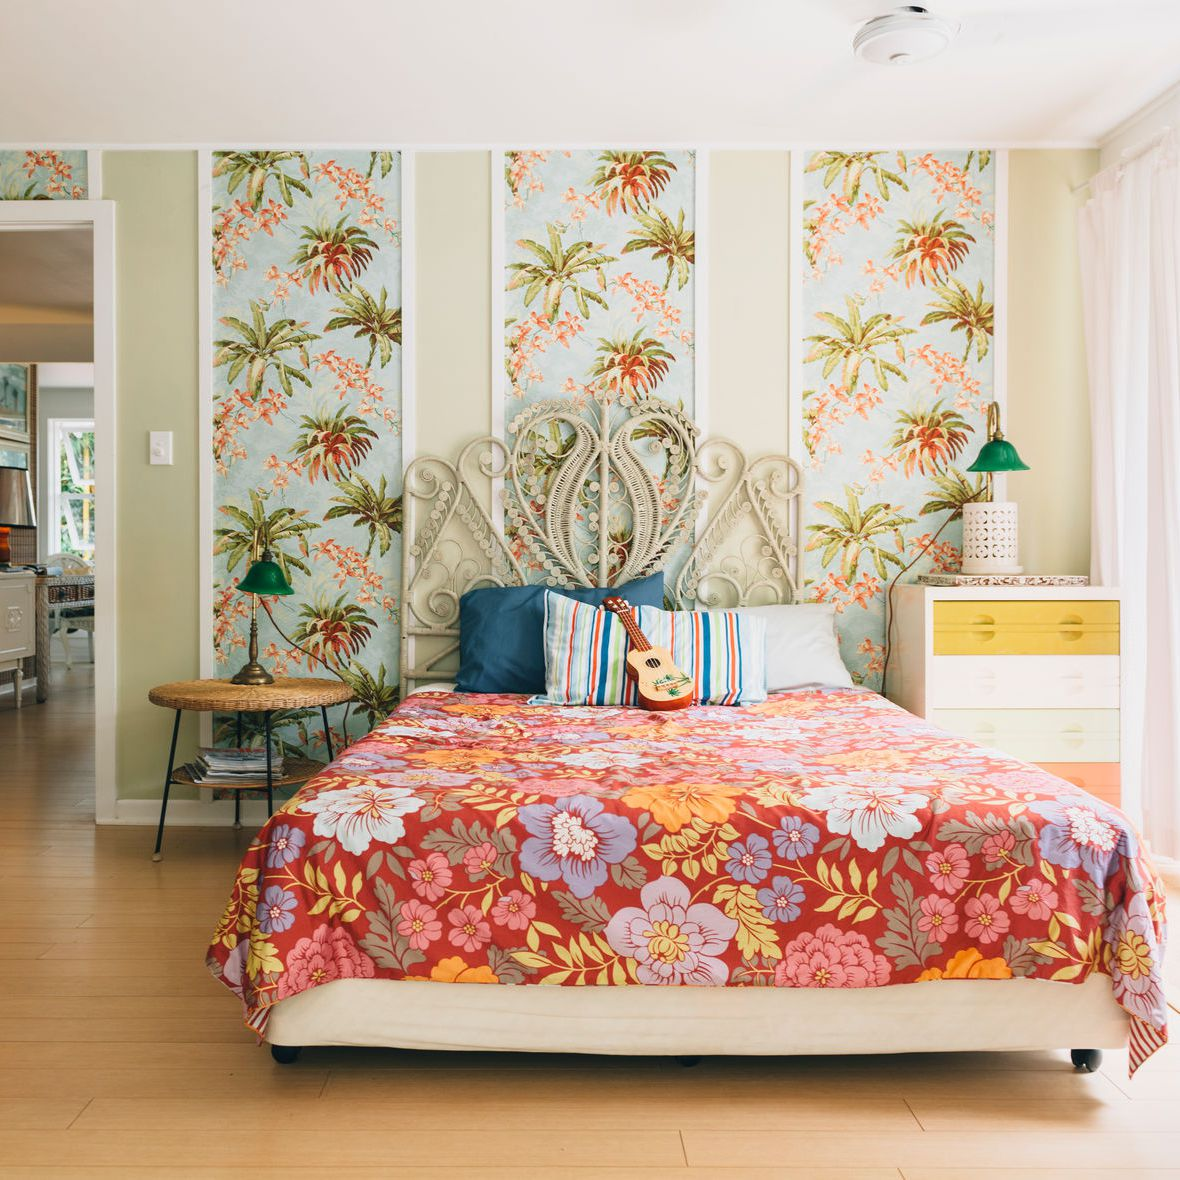 6 Bedroom Updates You Can Get Done for Under $60